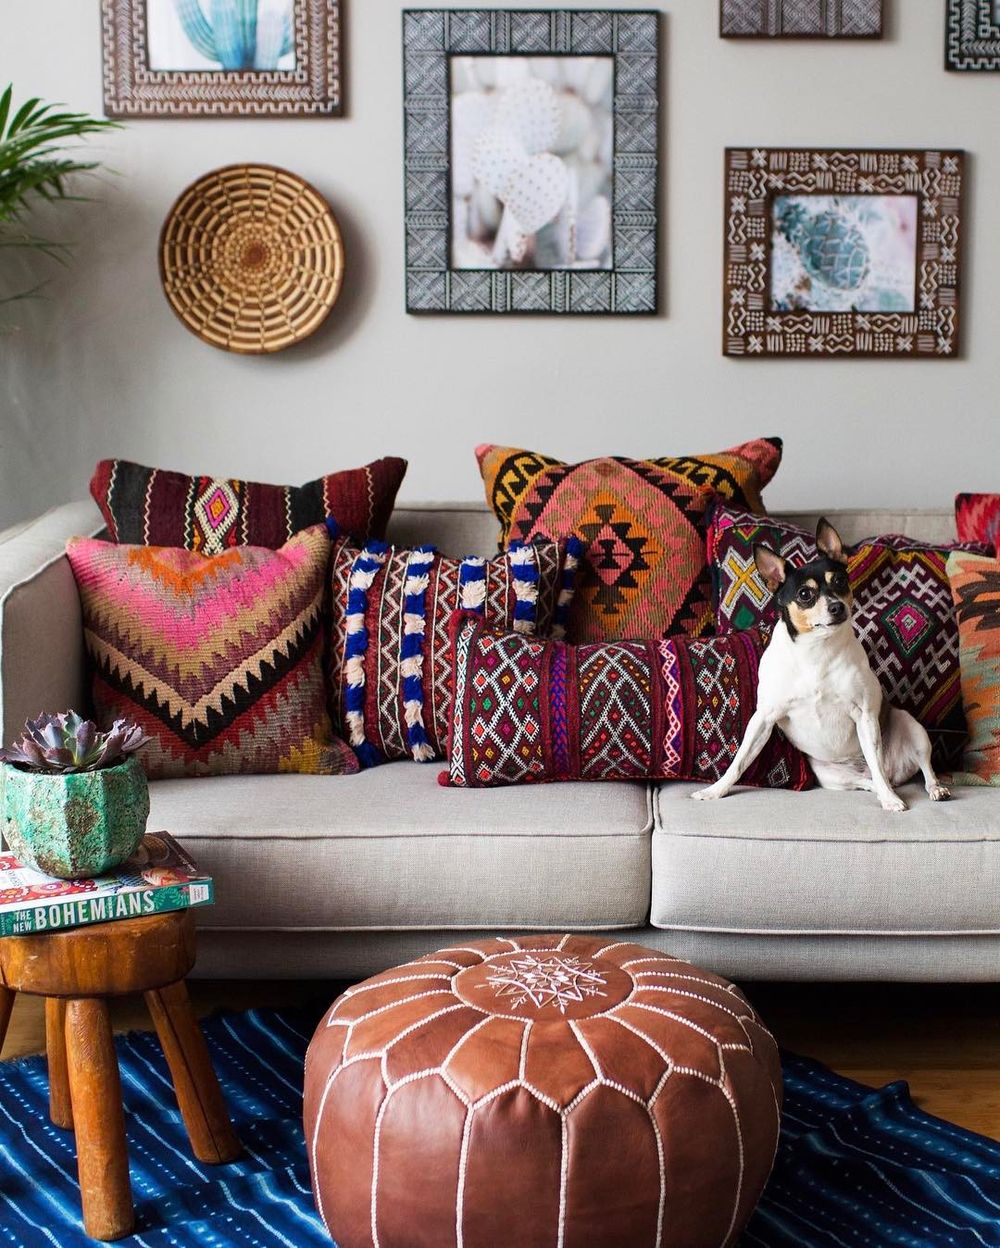 25 bohemian throw pillows in eclectic